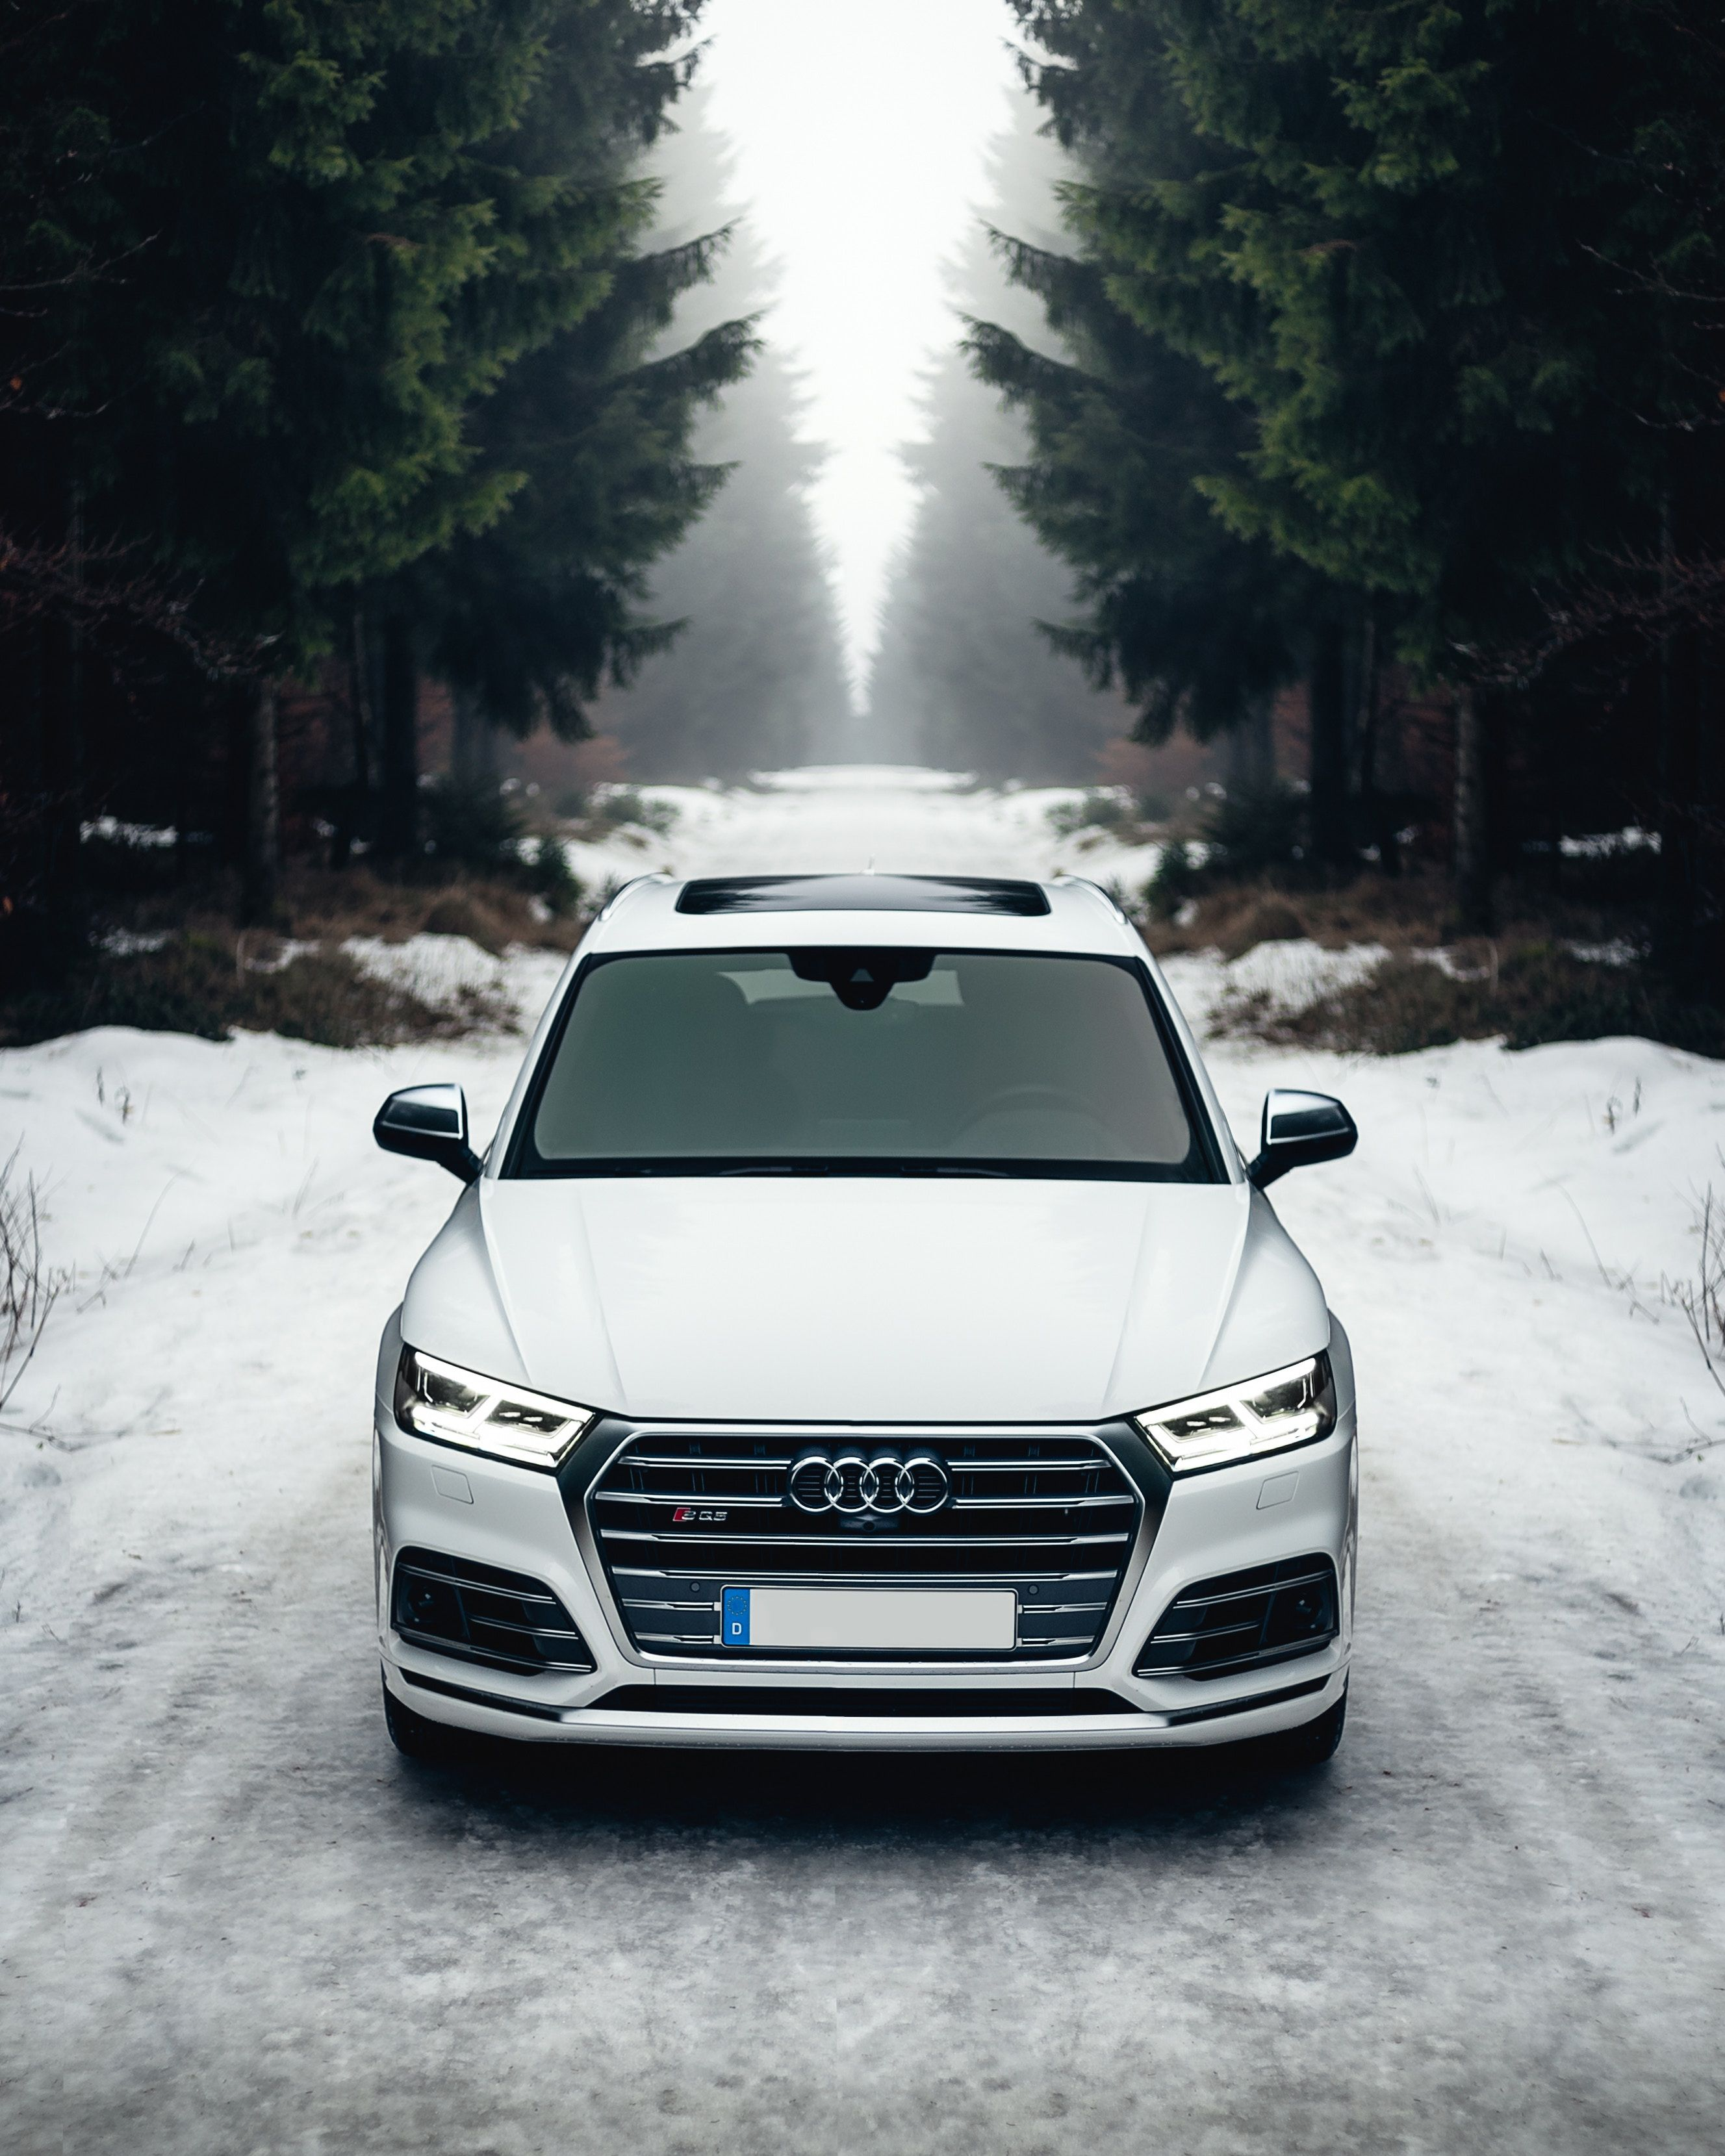 Altenberg Germany White Audi A8 On The Road Surrounded Of Trees